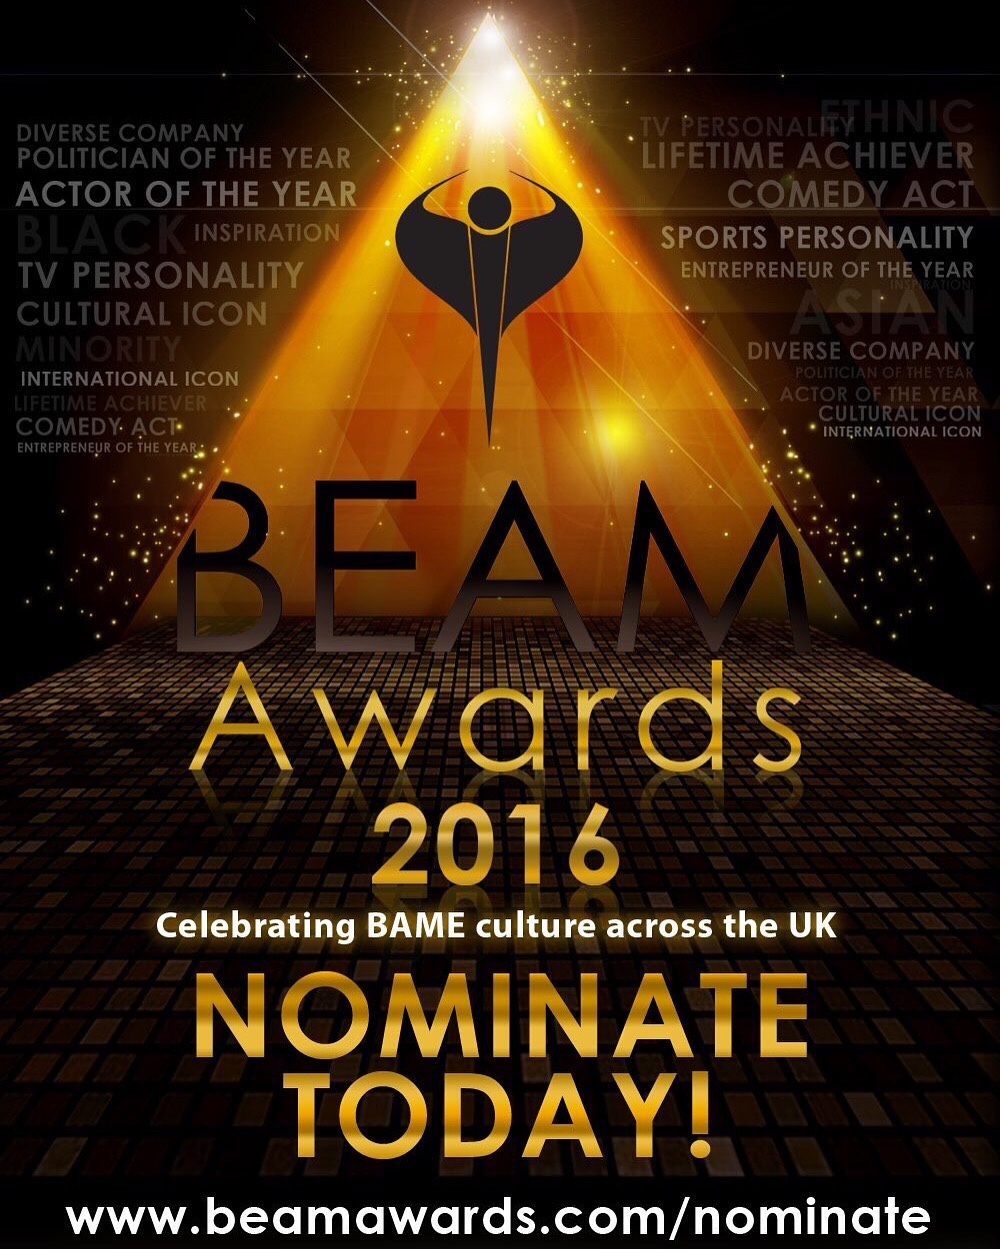 HUGE NEWS - I've been nominated for The Inspiration of the Year Award at The BEAM Awards 2016. The ceremony will be televised on ITV1 and hosted by the legendary Sir Trevor MacDonald OBE and Miss Alesha Dixon. The glittering ceremony will be held at The London Palladium on Wednesday 12th October 2016 and will highlight influential figures in the world of Celebrity, Sport, Film, Music, Journalism, Politics and Business, and promises to profile, empower and acknowledge their extraordinary feats.  The countdown for nominations begins as submissions close on Friday 22nd July. Voting will open for two weeks on Monday 01st August 2016 allowing the nation to decide their favourite BAME icons. The finalists of each award category will be announced shortly after this date.  Thank you for all those that have already sent through a nomination but if you'd like to nominate for me please visit:  http://www.beamawards.com/inspiration/